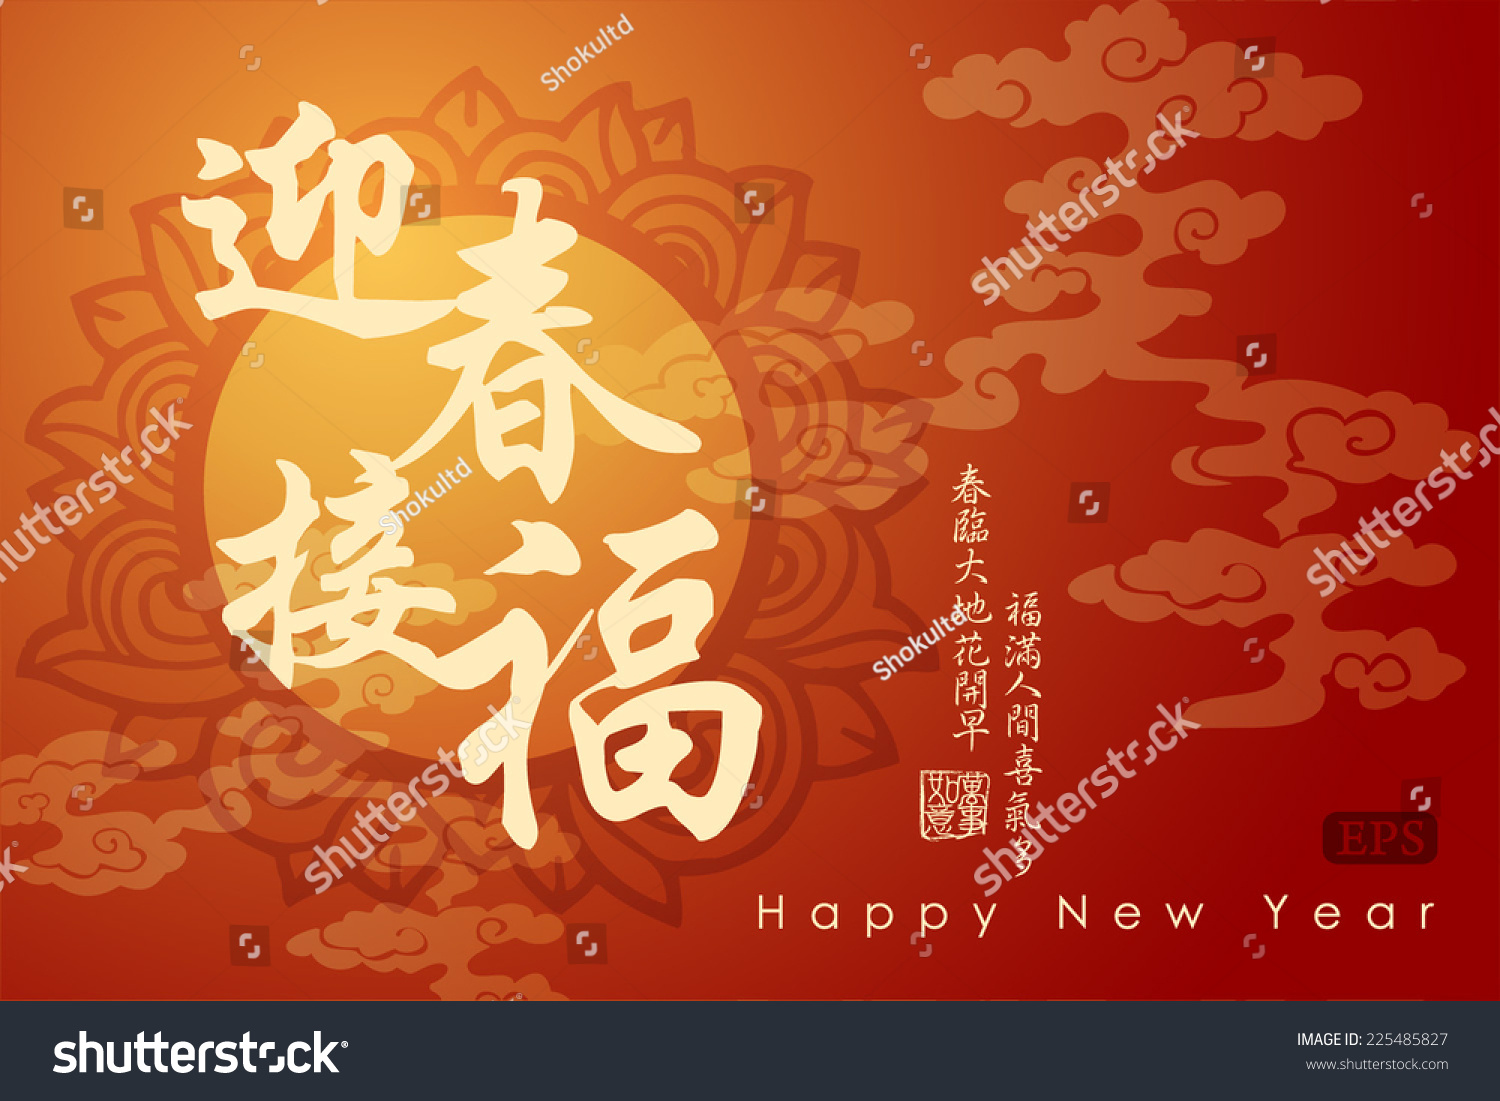 Chinese new year greeting card design translation stock vector chinese new year greeting card designanslation happy new yearanslation of small m4hsunfo